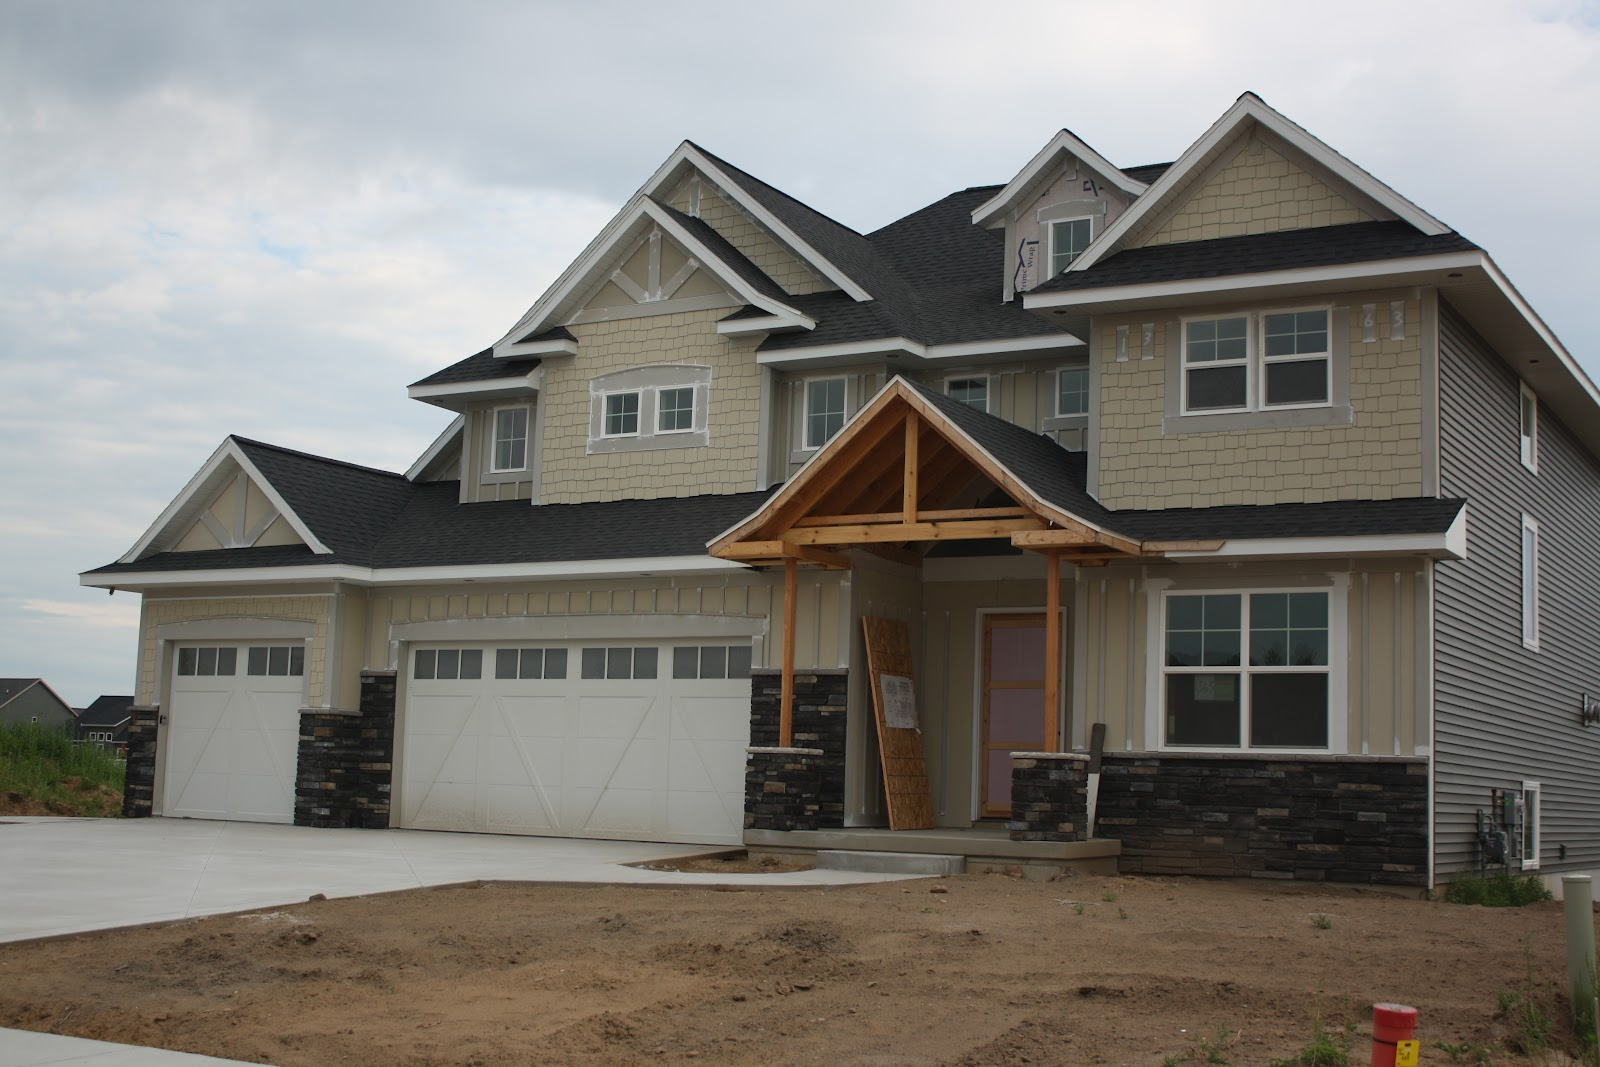 House On Tufton The Build Exterior Stone Siding And